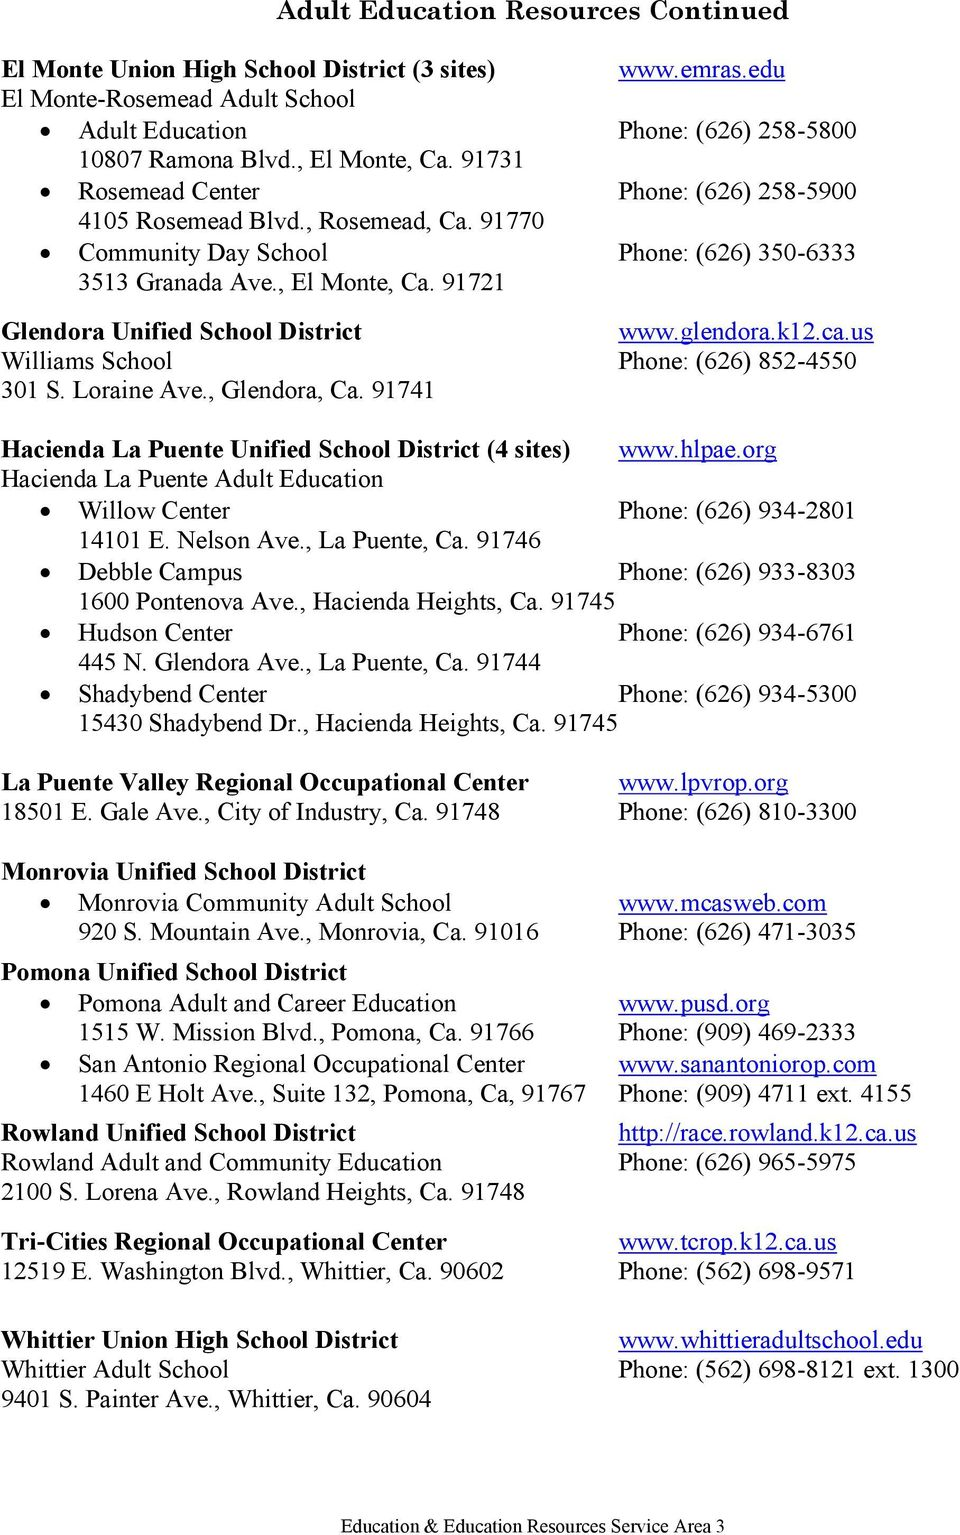 91721 Glendora Unified School District www.glendora.k12.ca.us Williams School Phone: (626) 852-4550 301 S. Loraine Ave., Glendora, Ca. 91741 Hacienda La Puente Unified School District (4 sites) www.